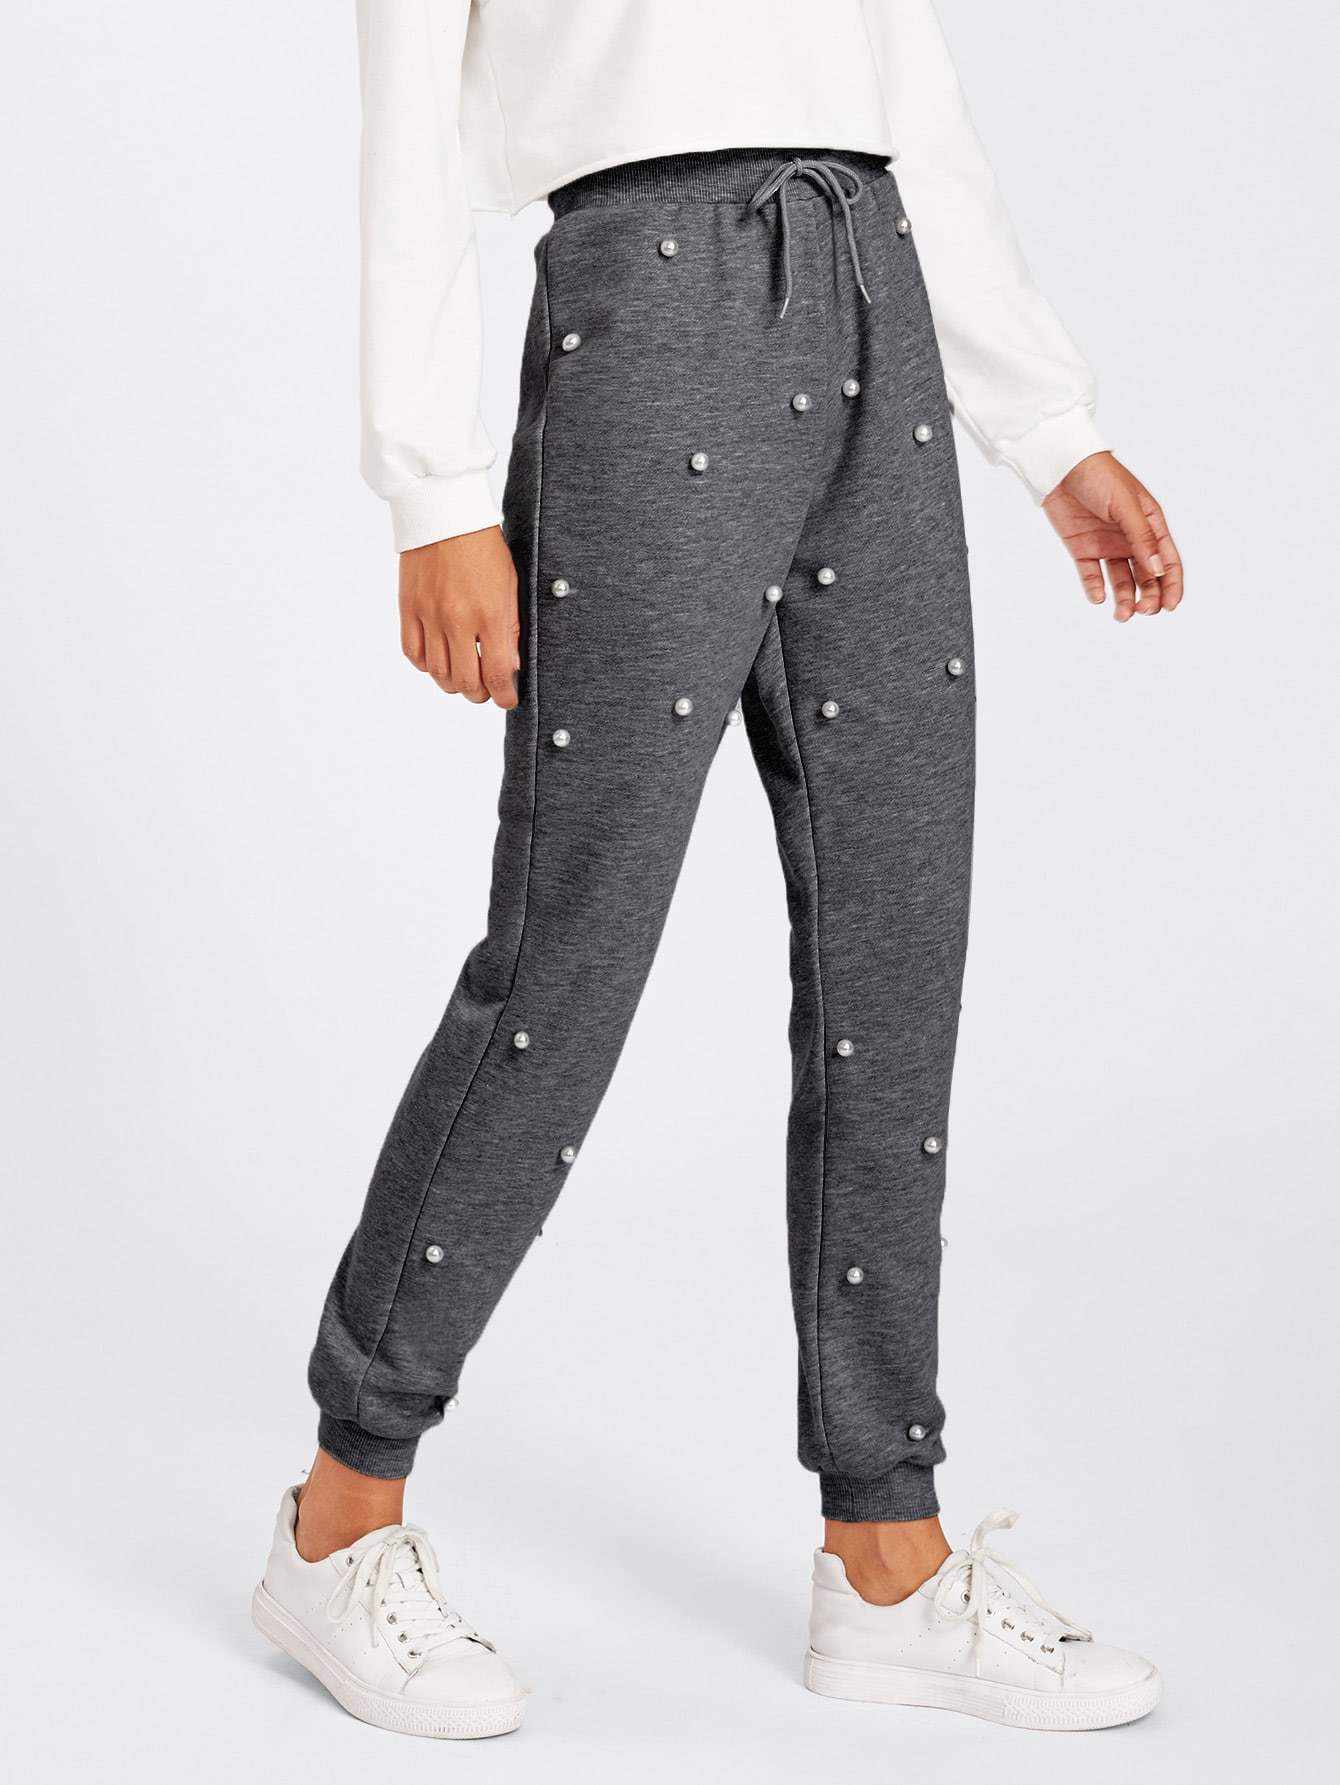 Pearl Beading Heathered Knit Sweatpants pants171115701